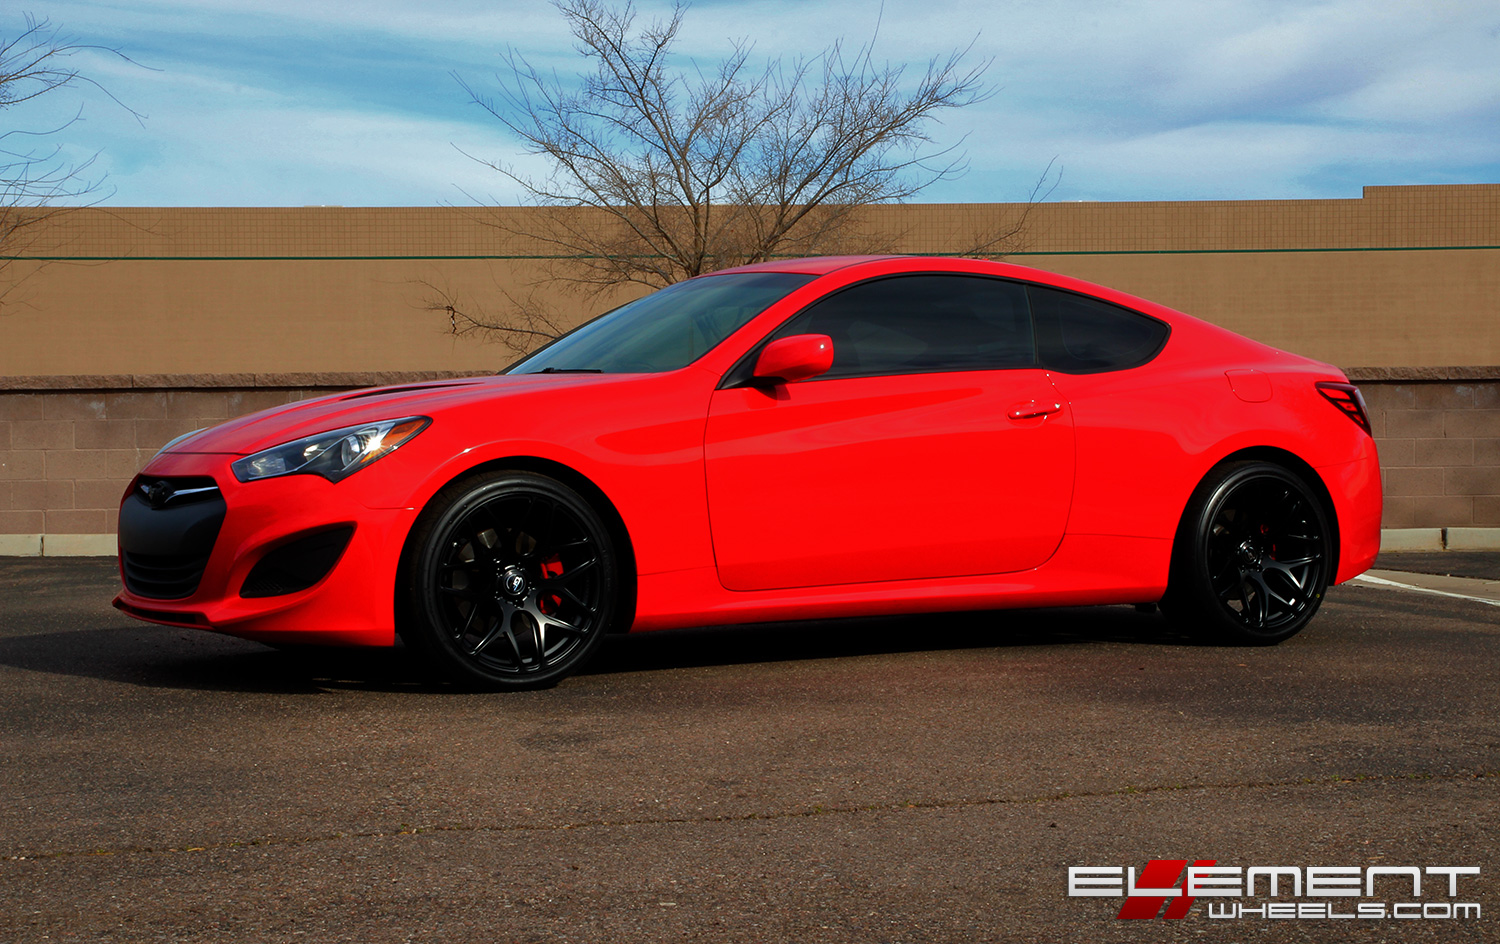 19 Inch Staggered Ground Force GF09 Matte Black On 2013 Hyundai Genesis  Coupe W/ Specs | Element Wheels